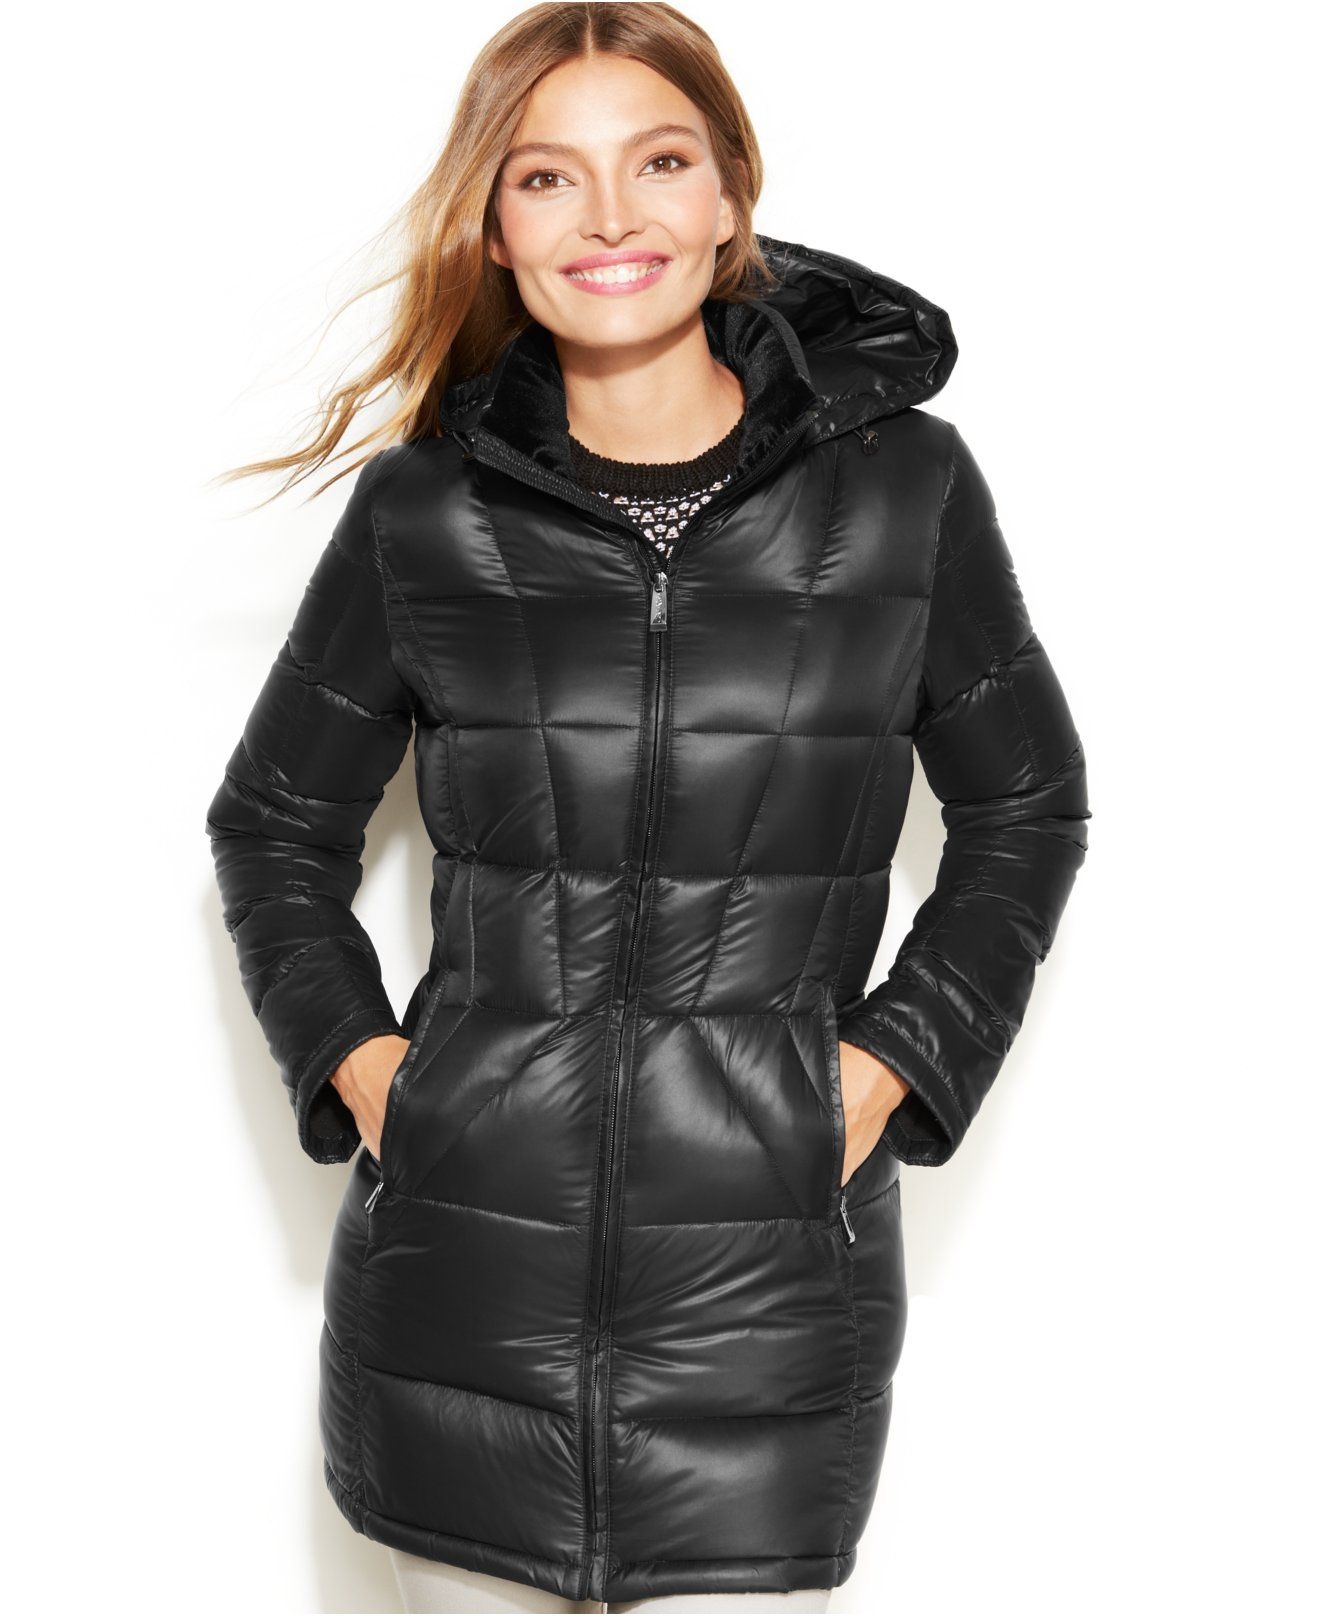 b6f9552326b Calvin Klein Petite Packable Quilted Down Puffer Jacket - Coats - Women -  Macy s